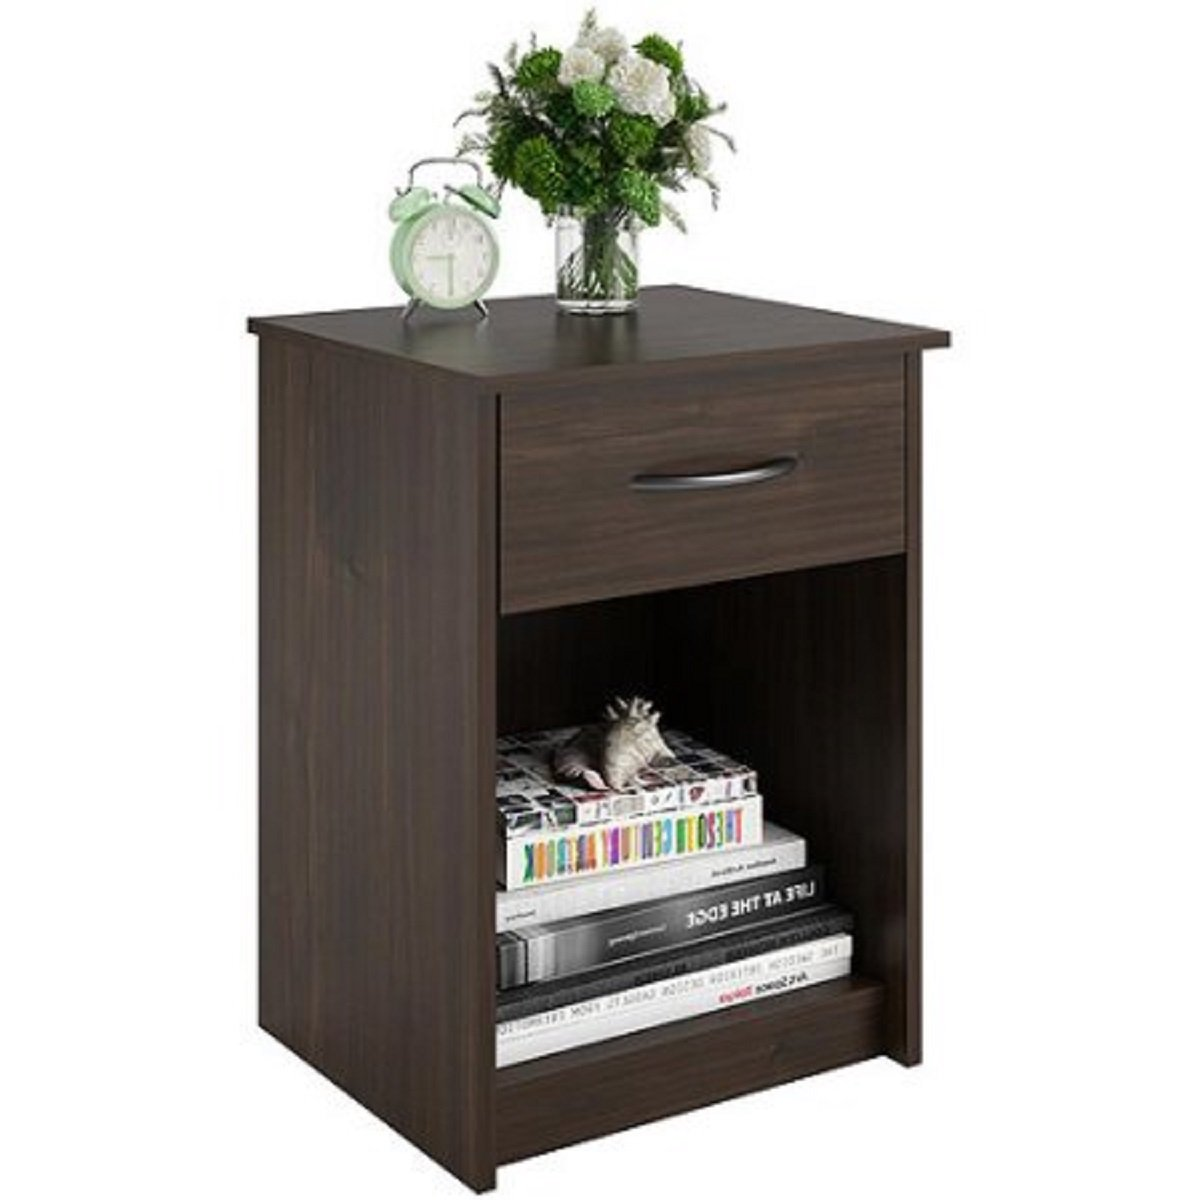 saint walnut made composite wood sleek design winsome ava accent table with drawer black finish complements any room decor nightstand end dimensions kitchen cube coffee carpet